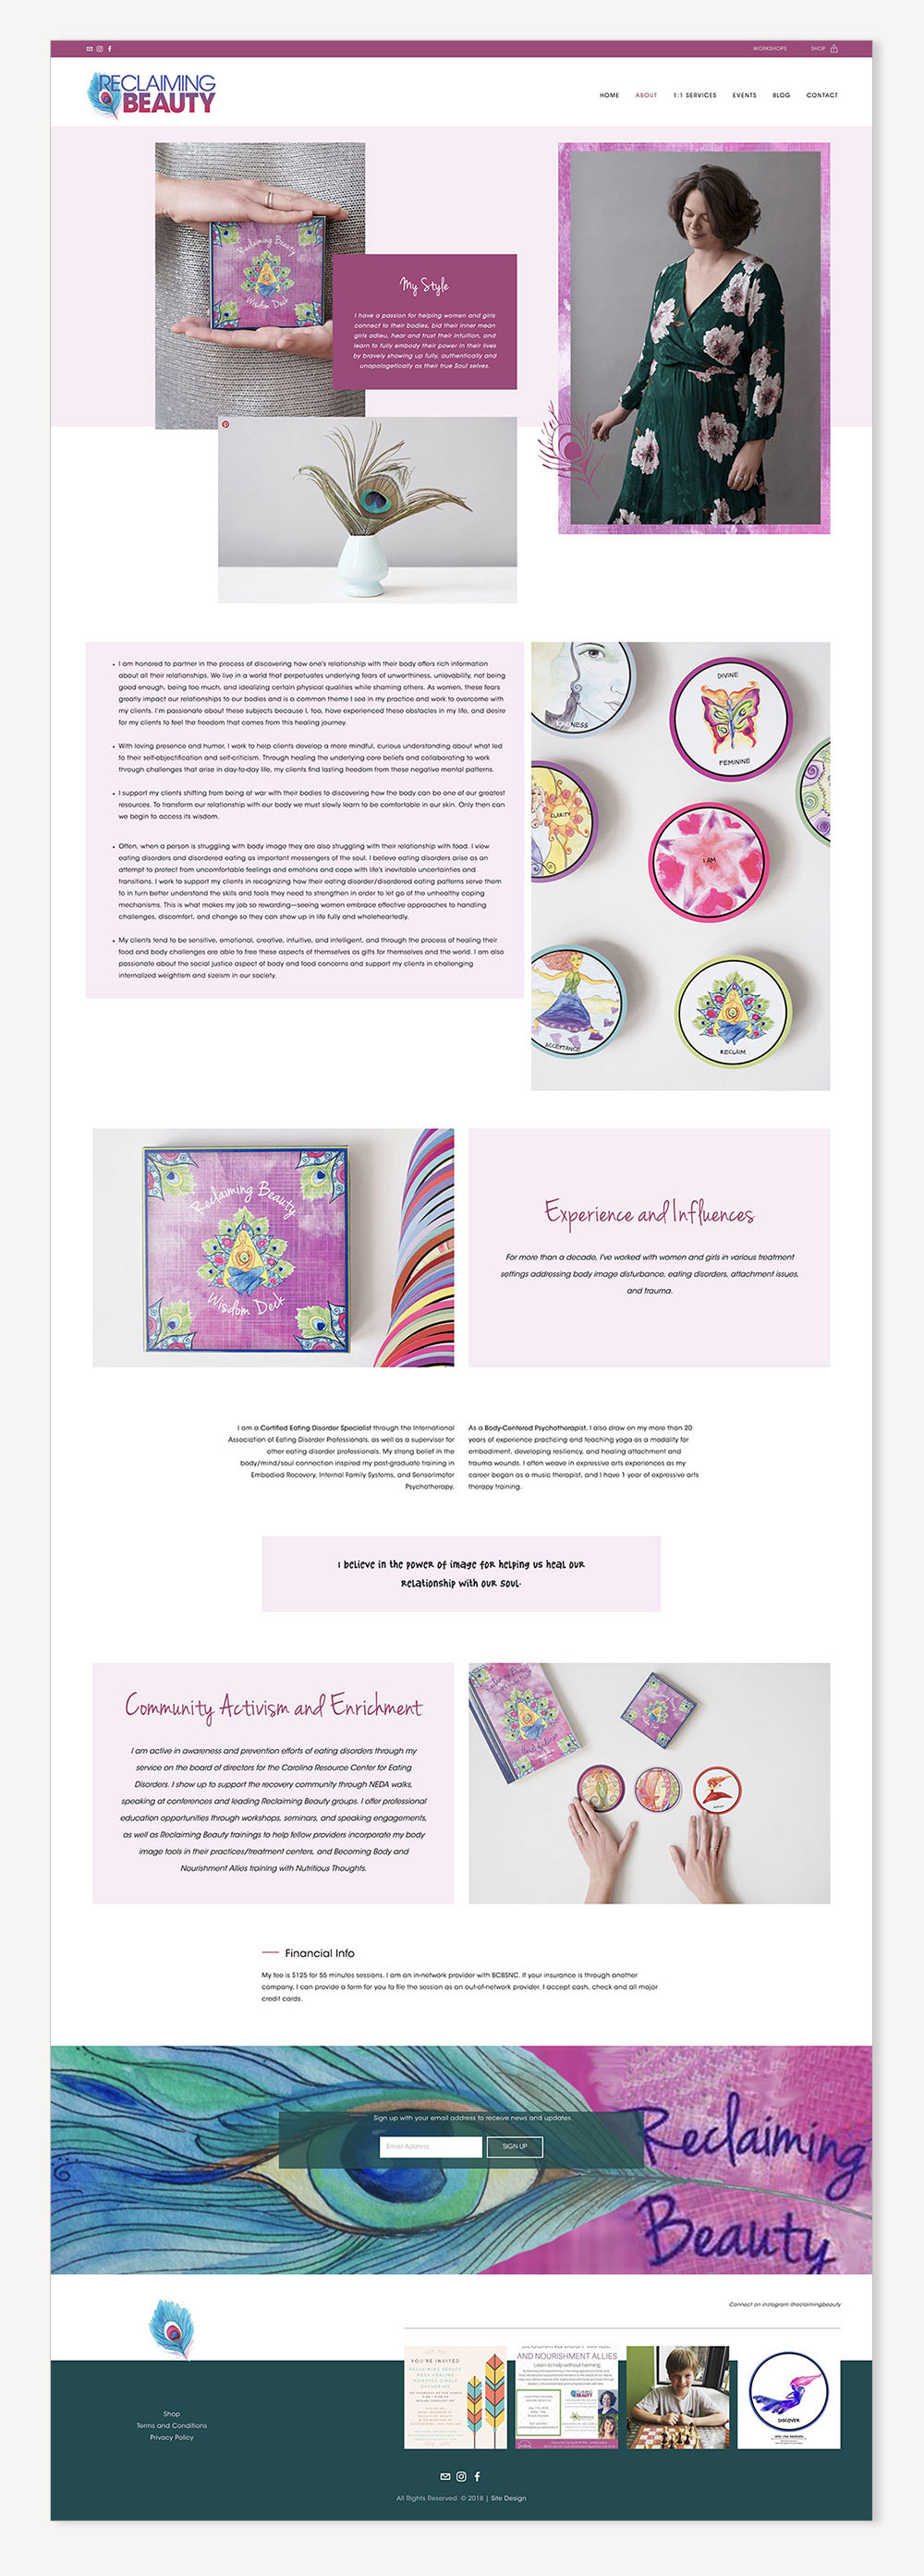 Reclaiming Beauty About page | website design by Jodi Neufeld Design